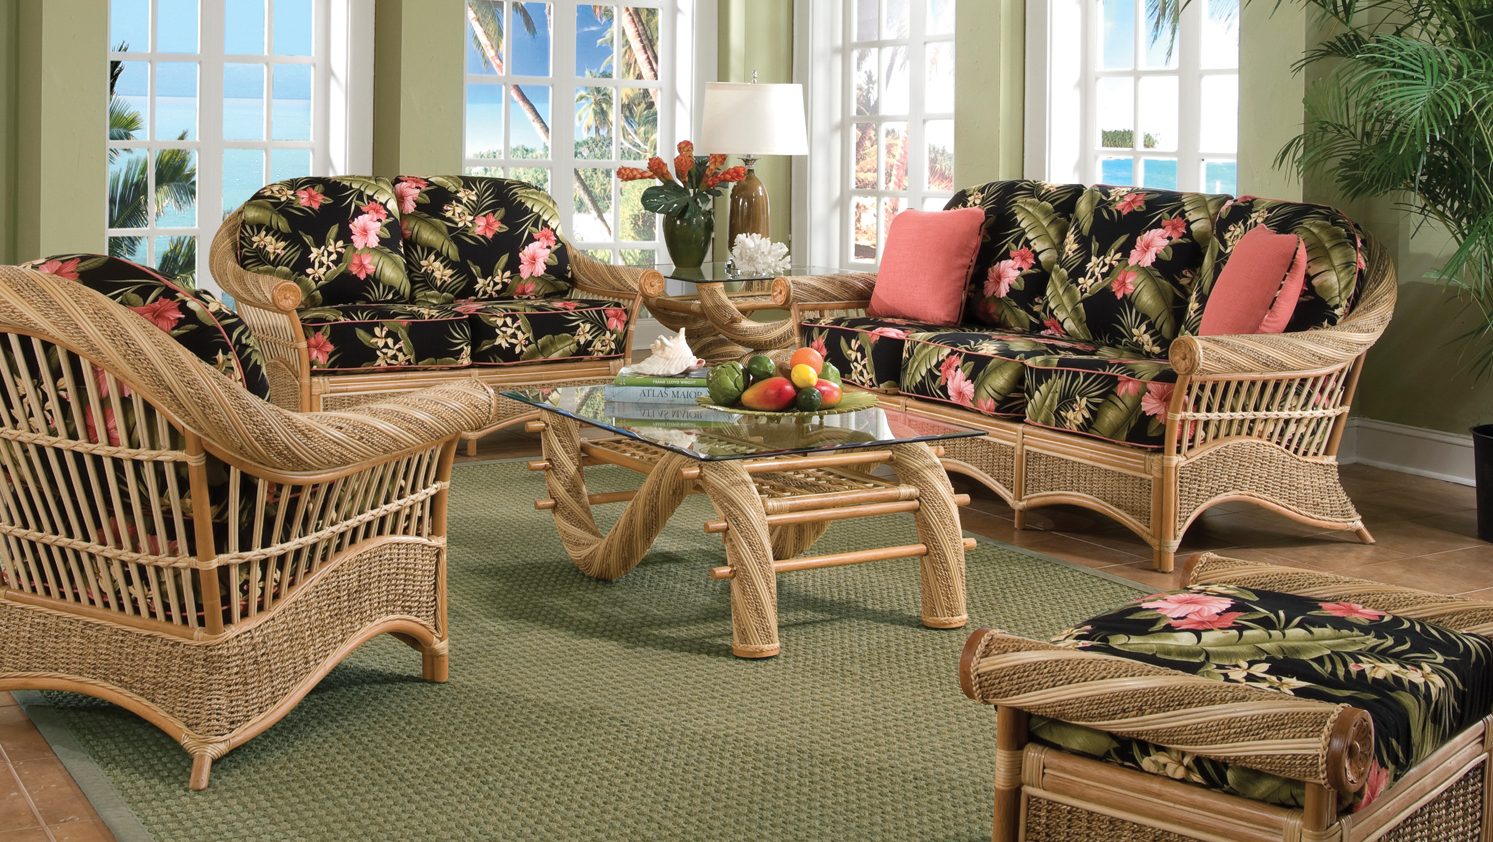 Tropical rattan furniture kona wicker paradise for Bedroom furniture hawaii